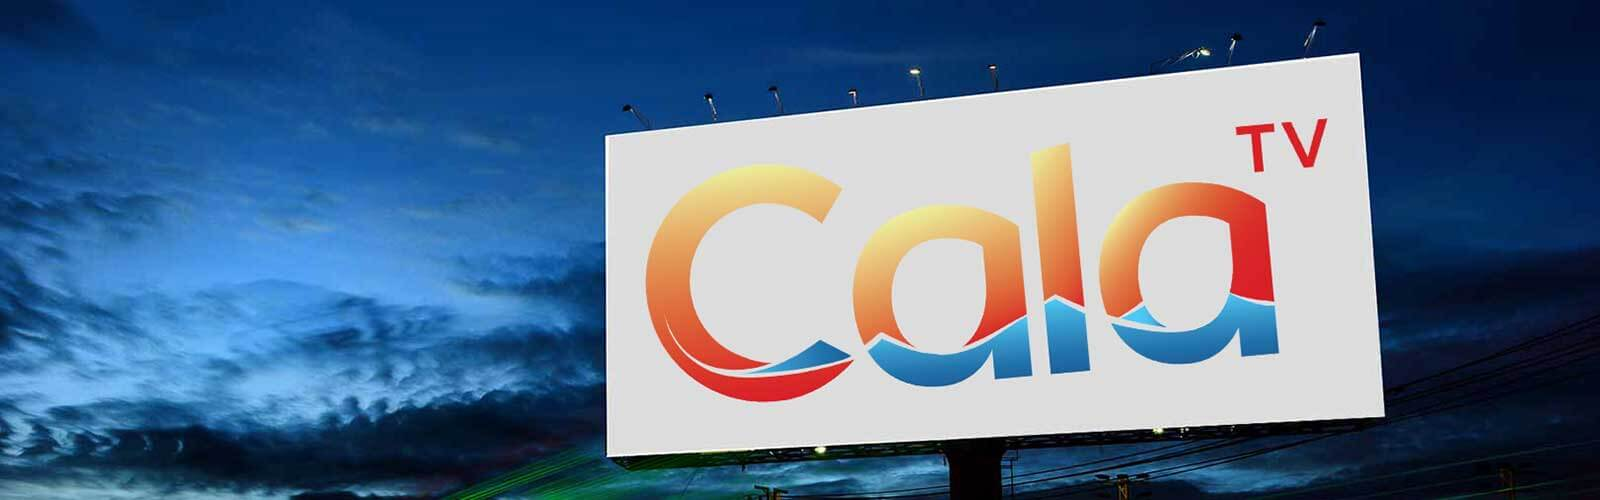 Billboard with CalaTV